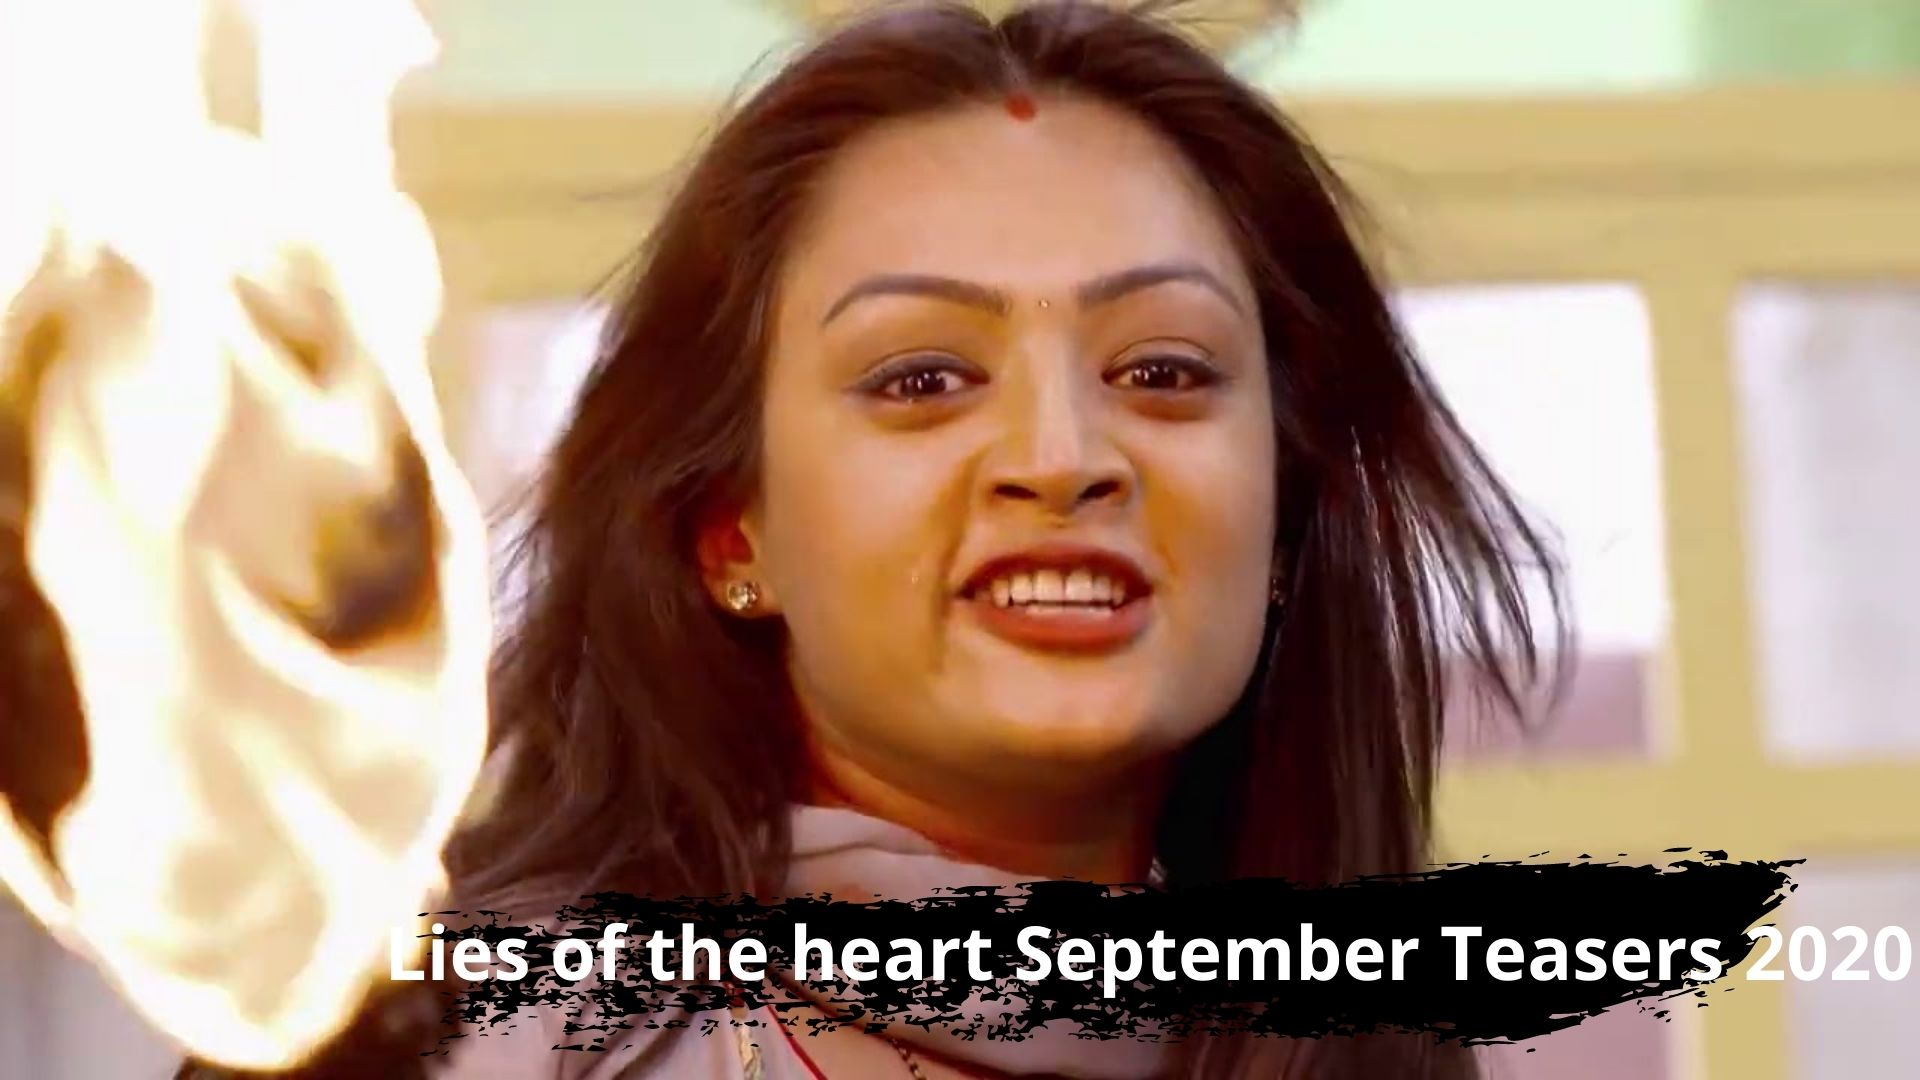 Lies of the heart september Teasers 2020 (1)